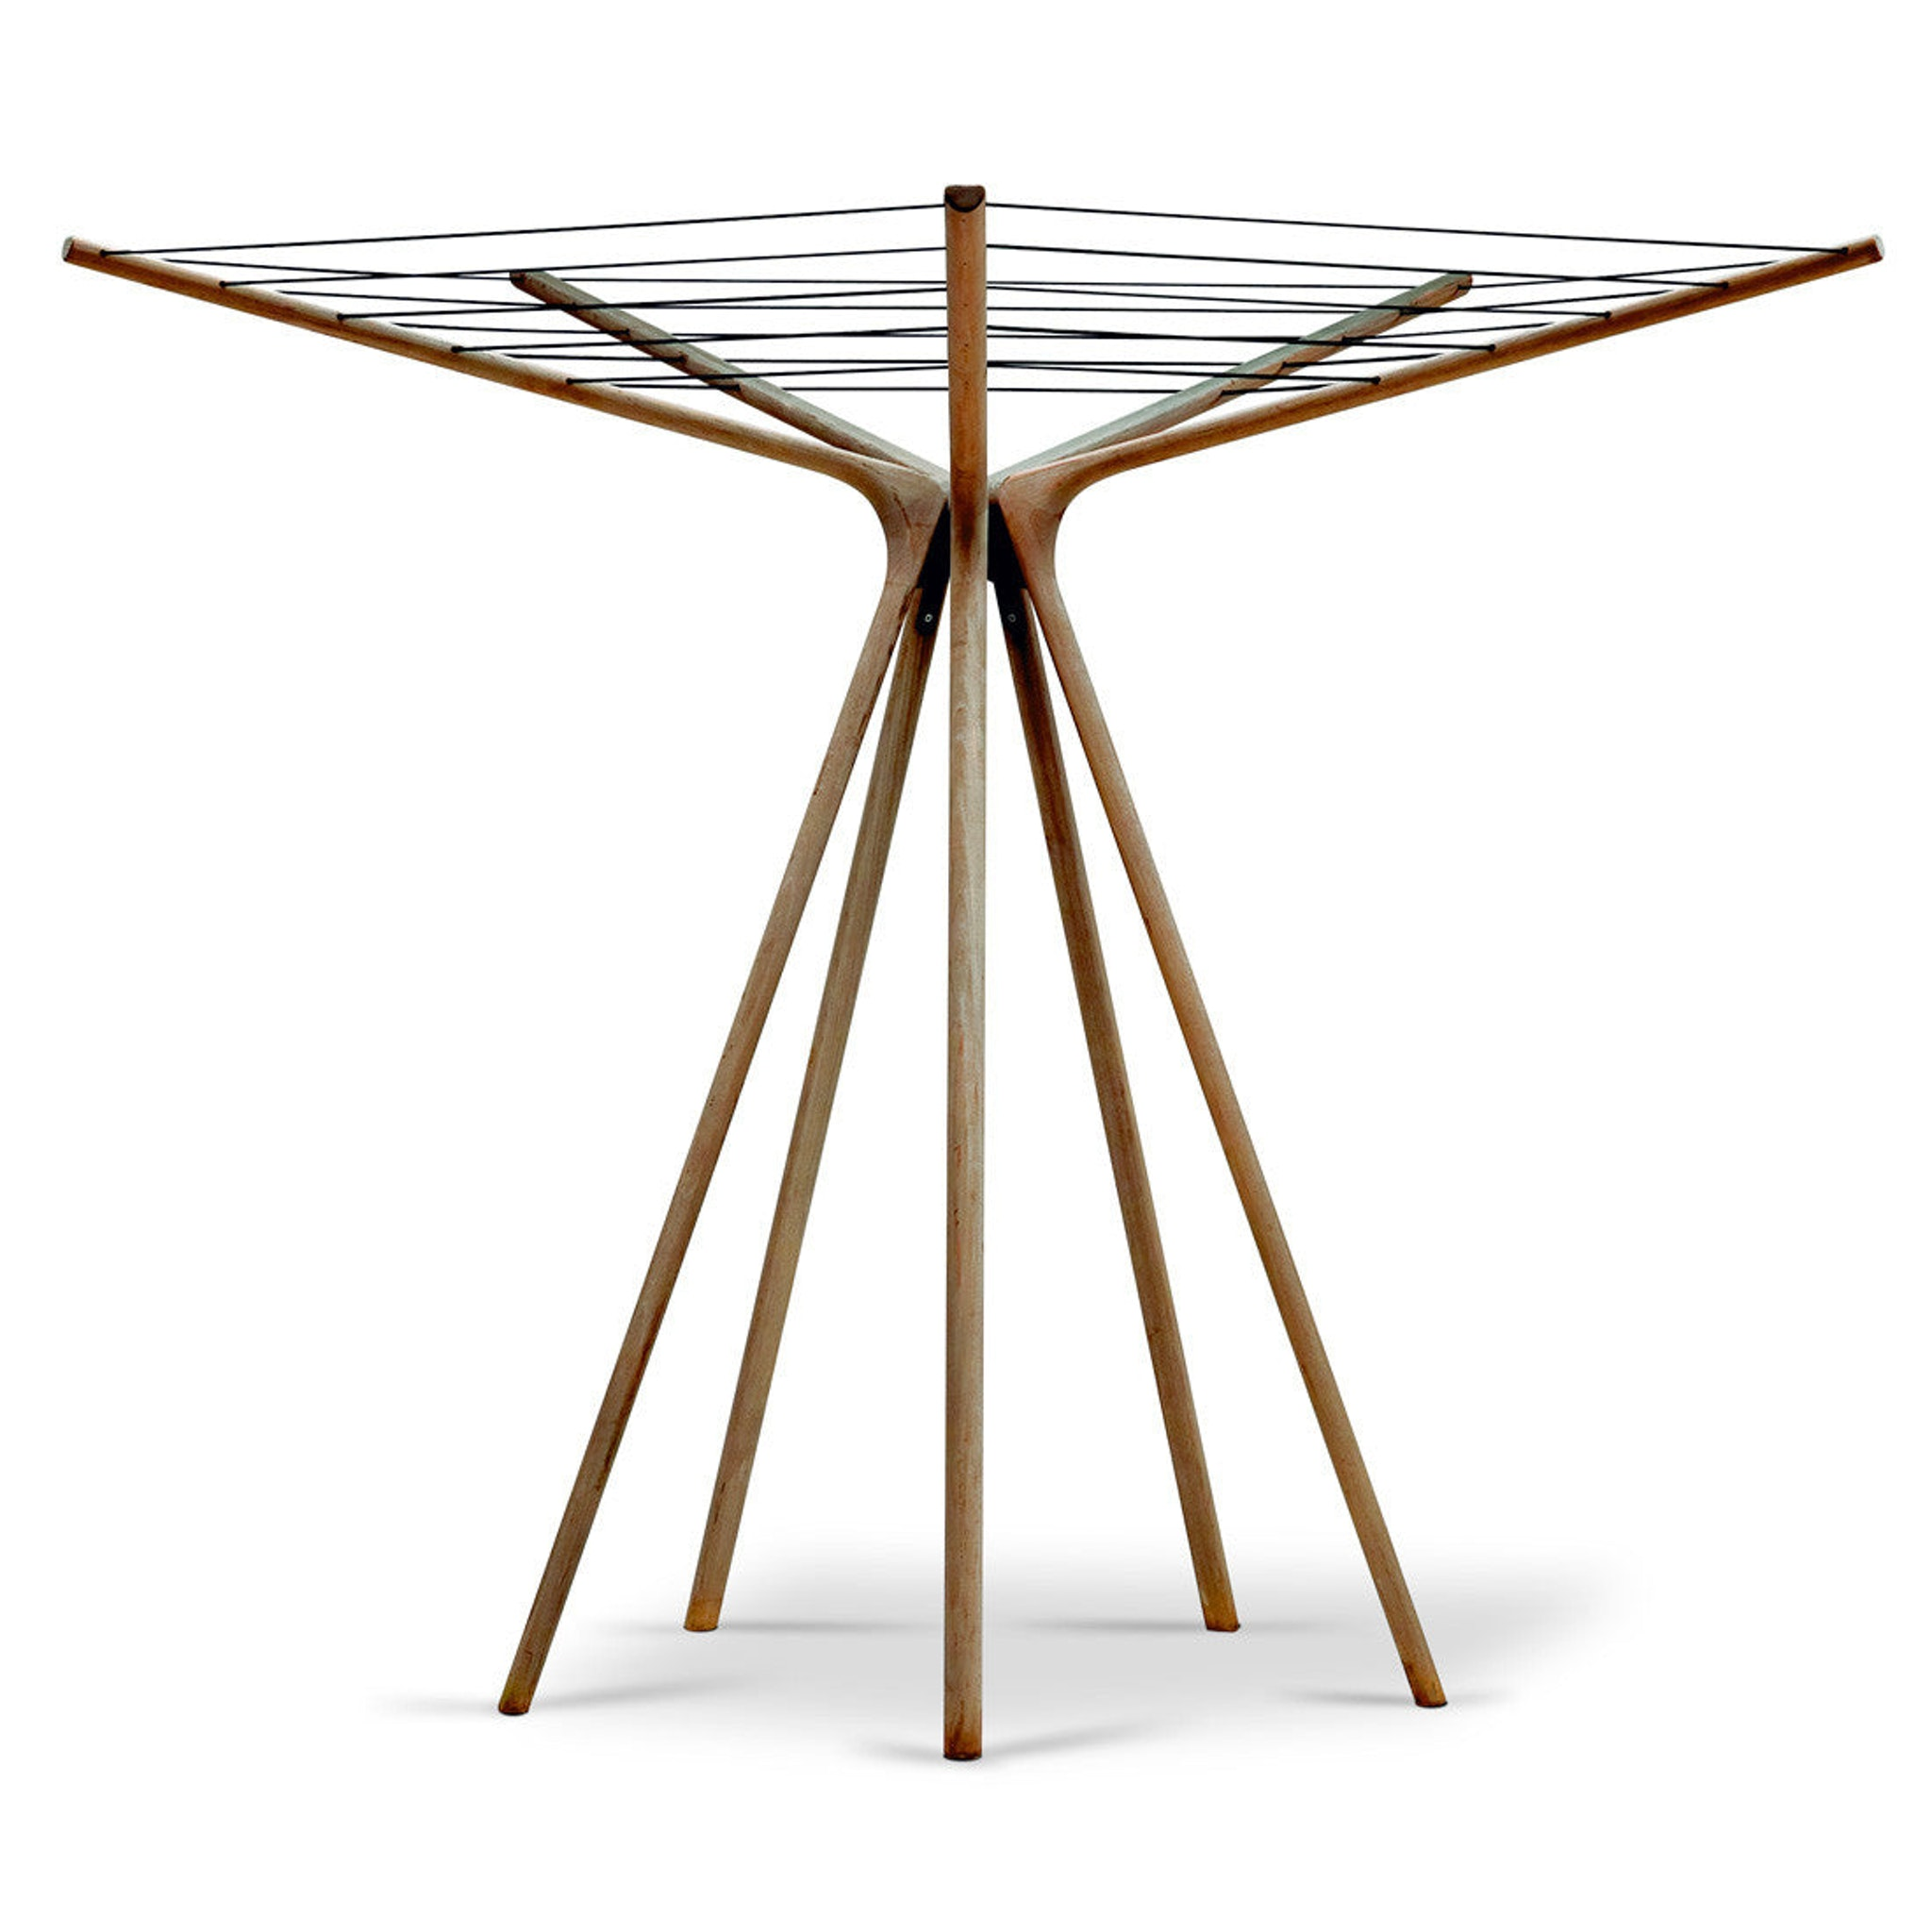 Spider Web Drying Rack by Skagerak